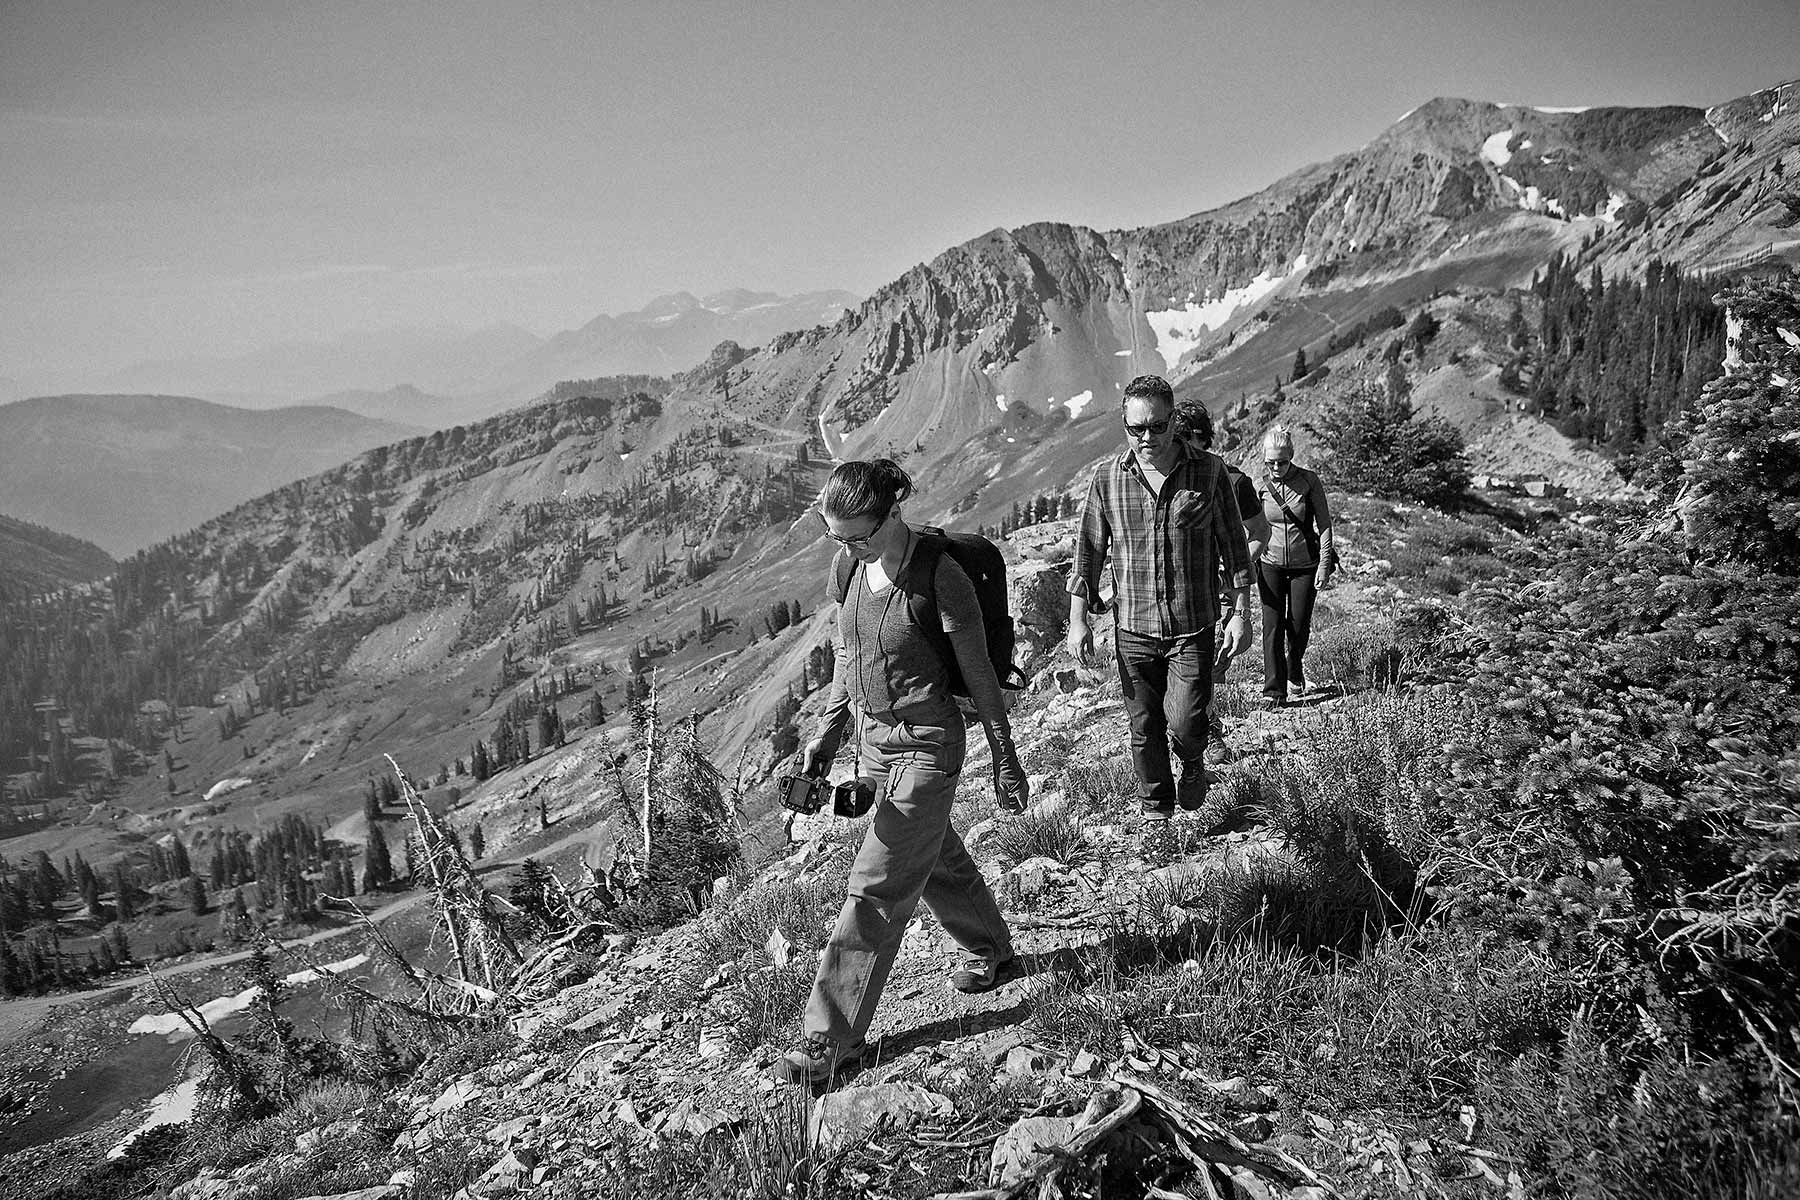 Day 1 - At the summit of Snowbird, Utah location and tech scouting.